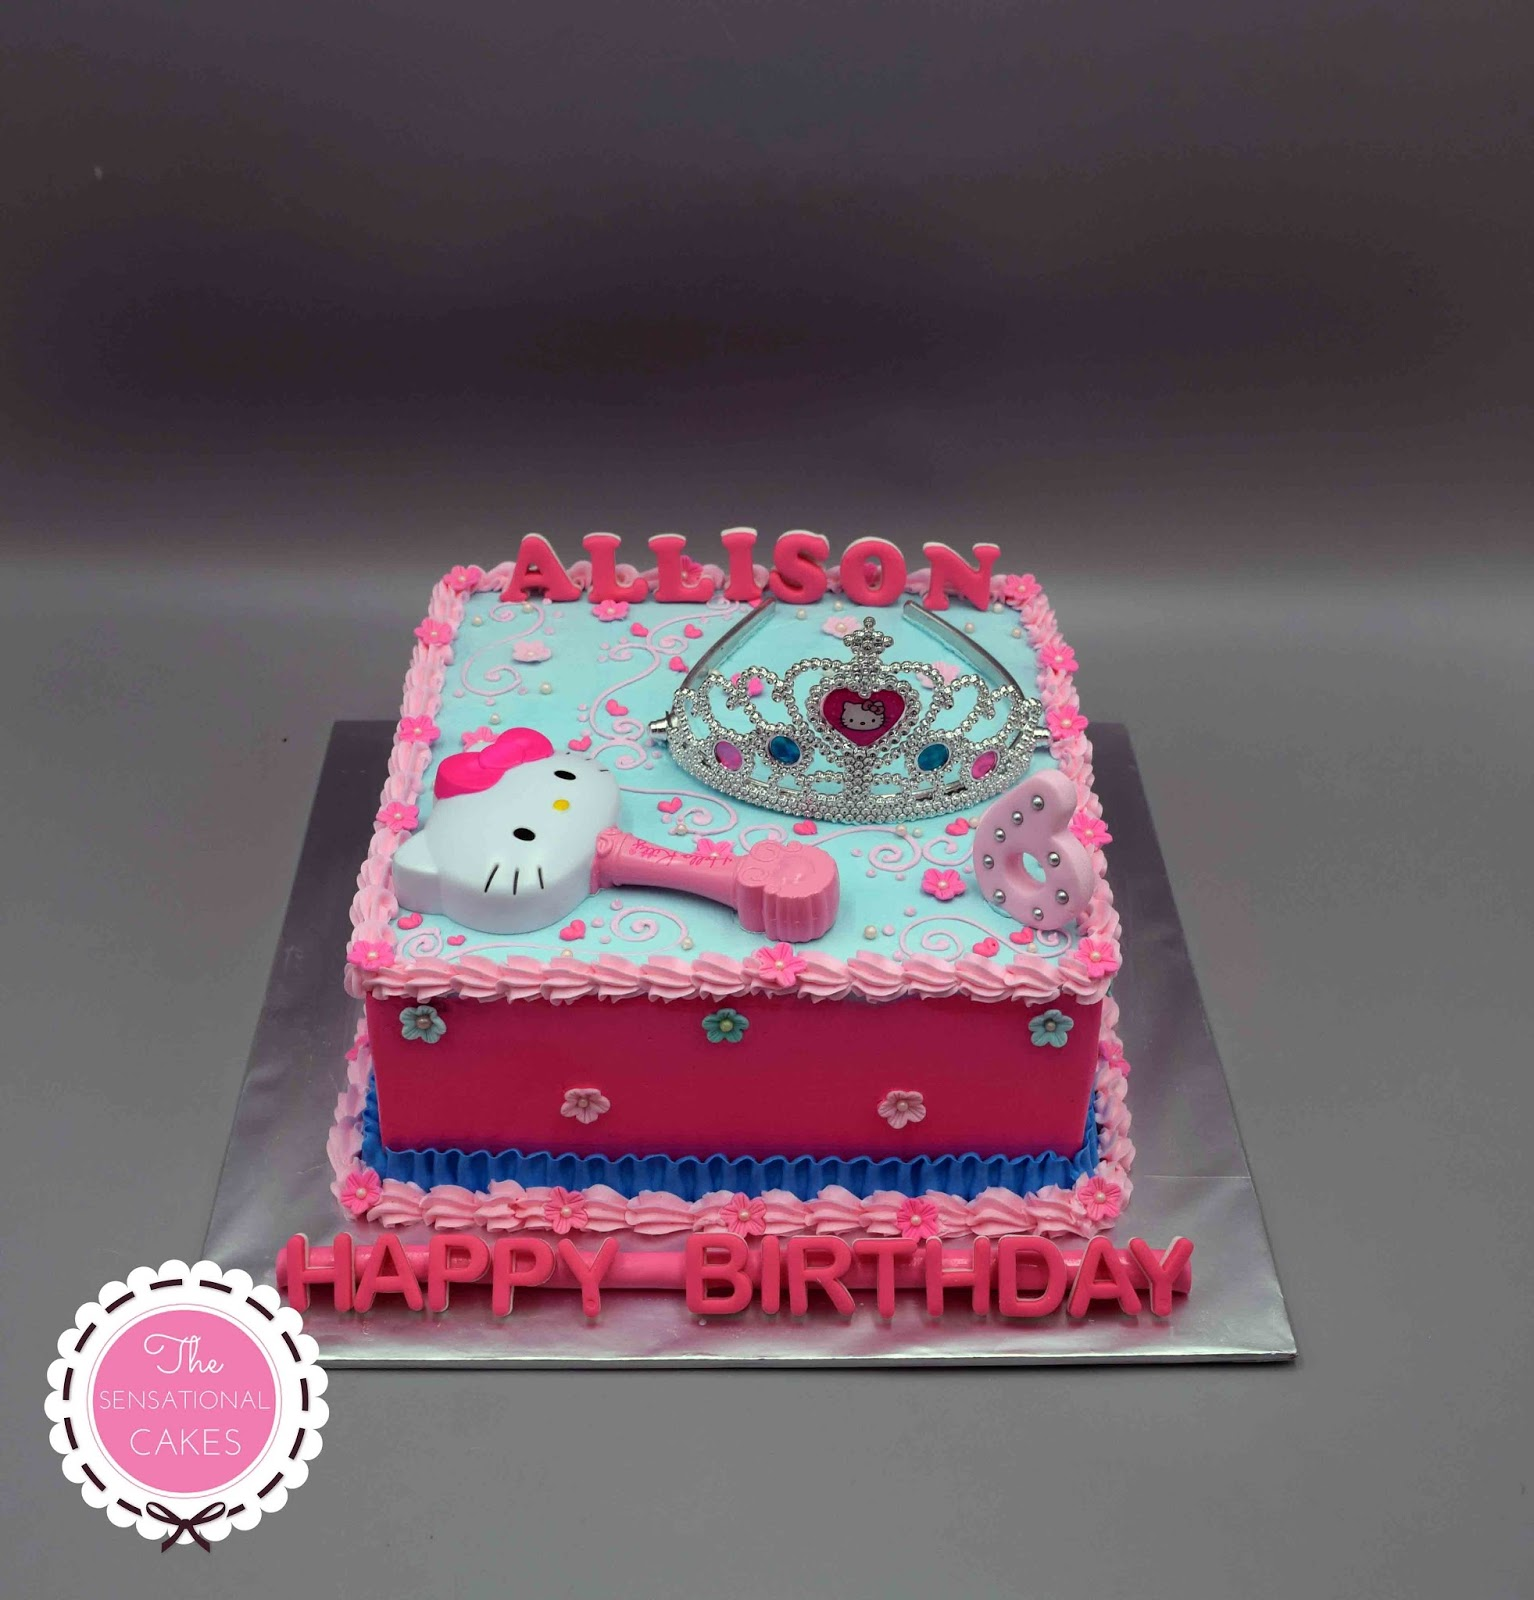 The Sensational Cakes Hello Kitty Pink Tiara Birthday Cake Singapore